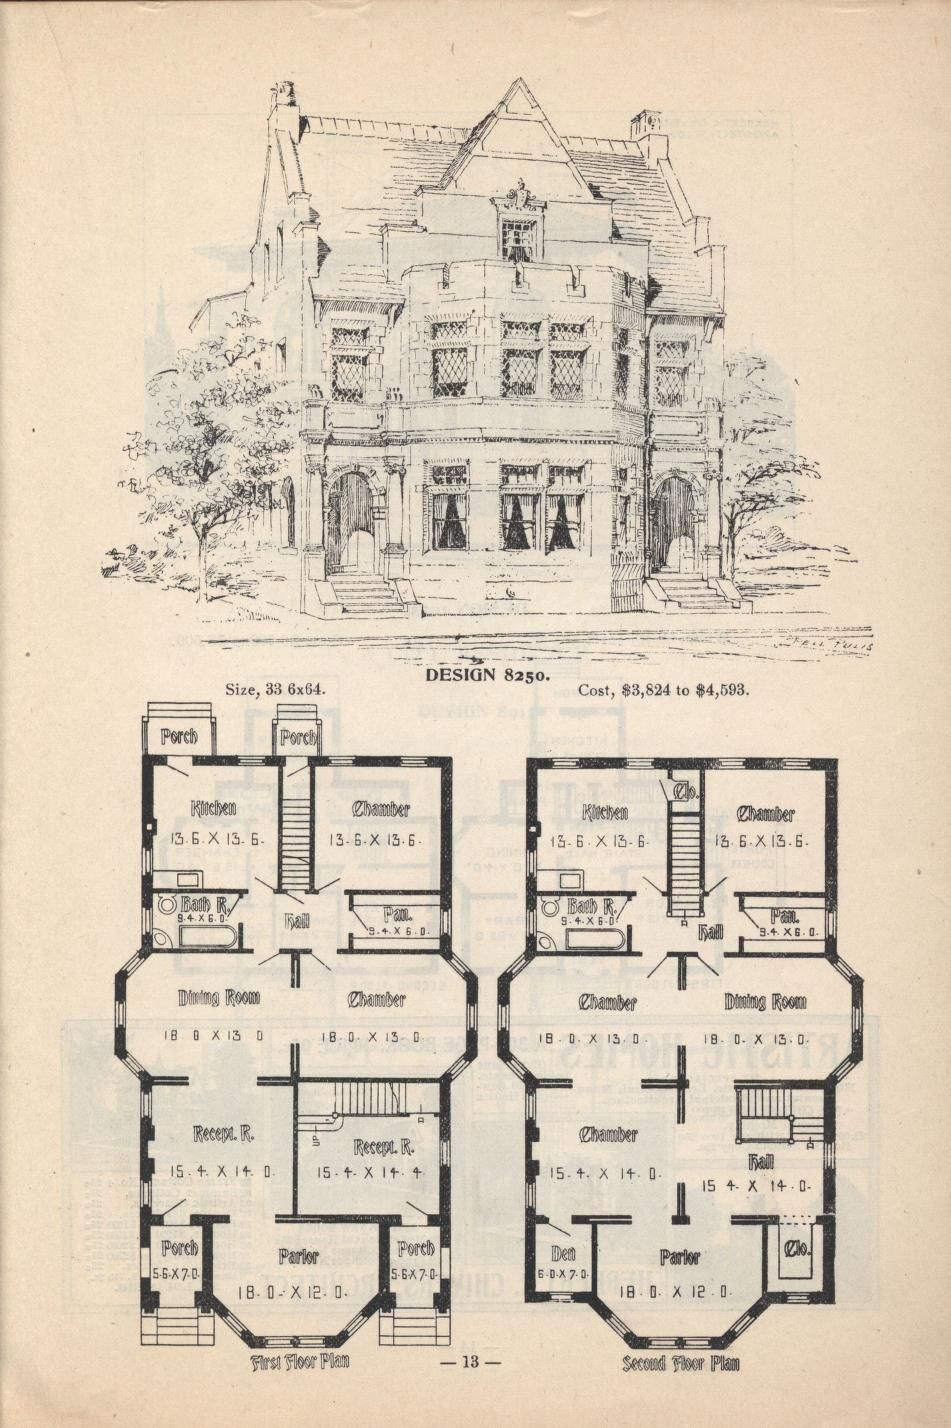 Old Classic Floor Plans 1890s 2 Story Home Artistic City Houses